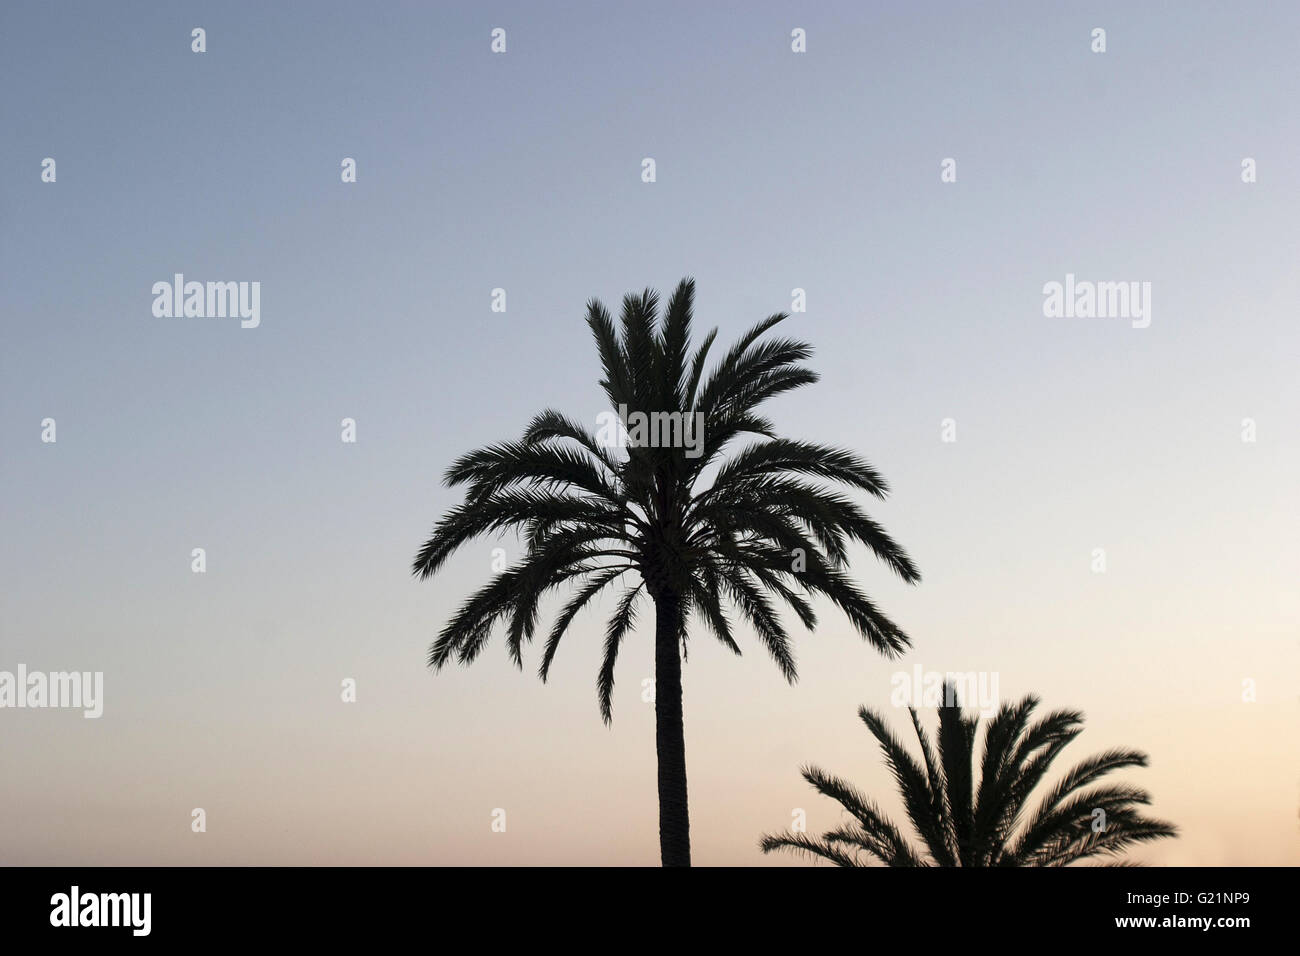 a beautiful poetic picture of two palm trees on the boulevard of Palma shot from below against the sky at sunset, - Stock Image